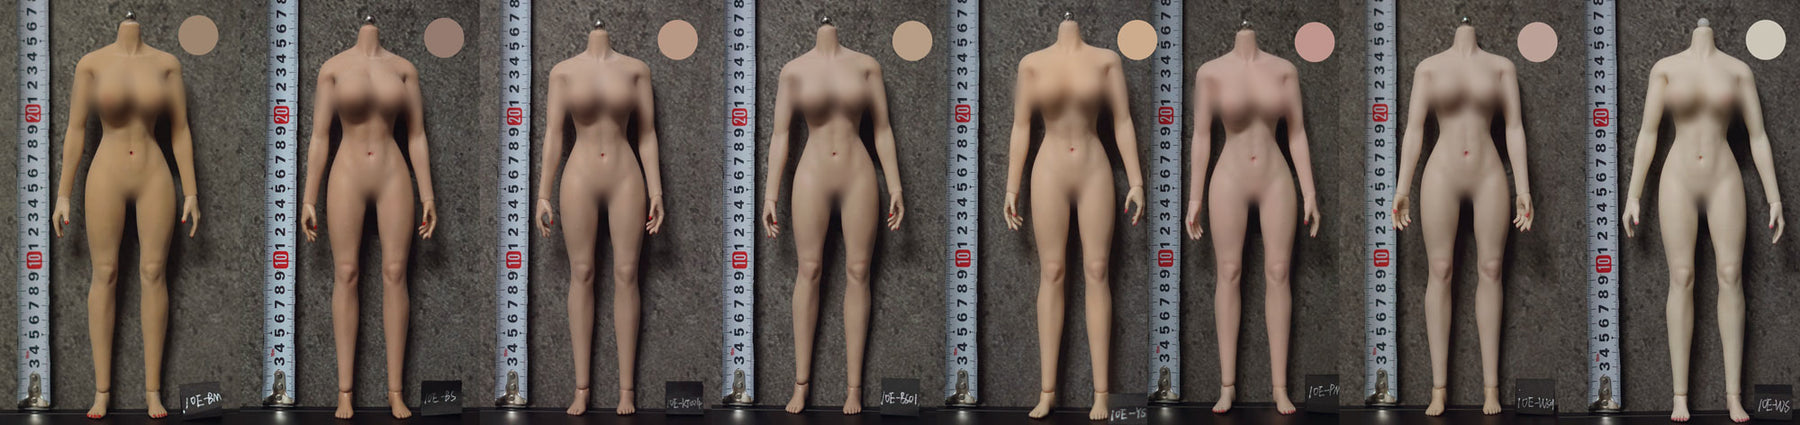 Skin Tones of Jiaou Doll Seamless Figures